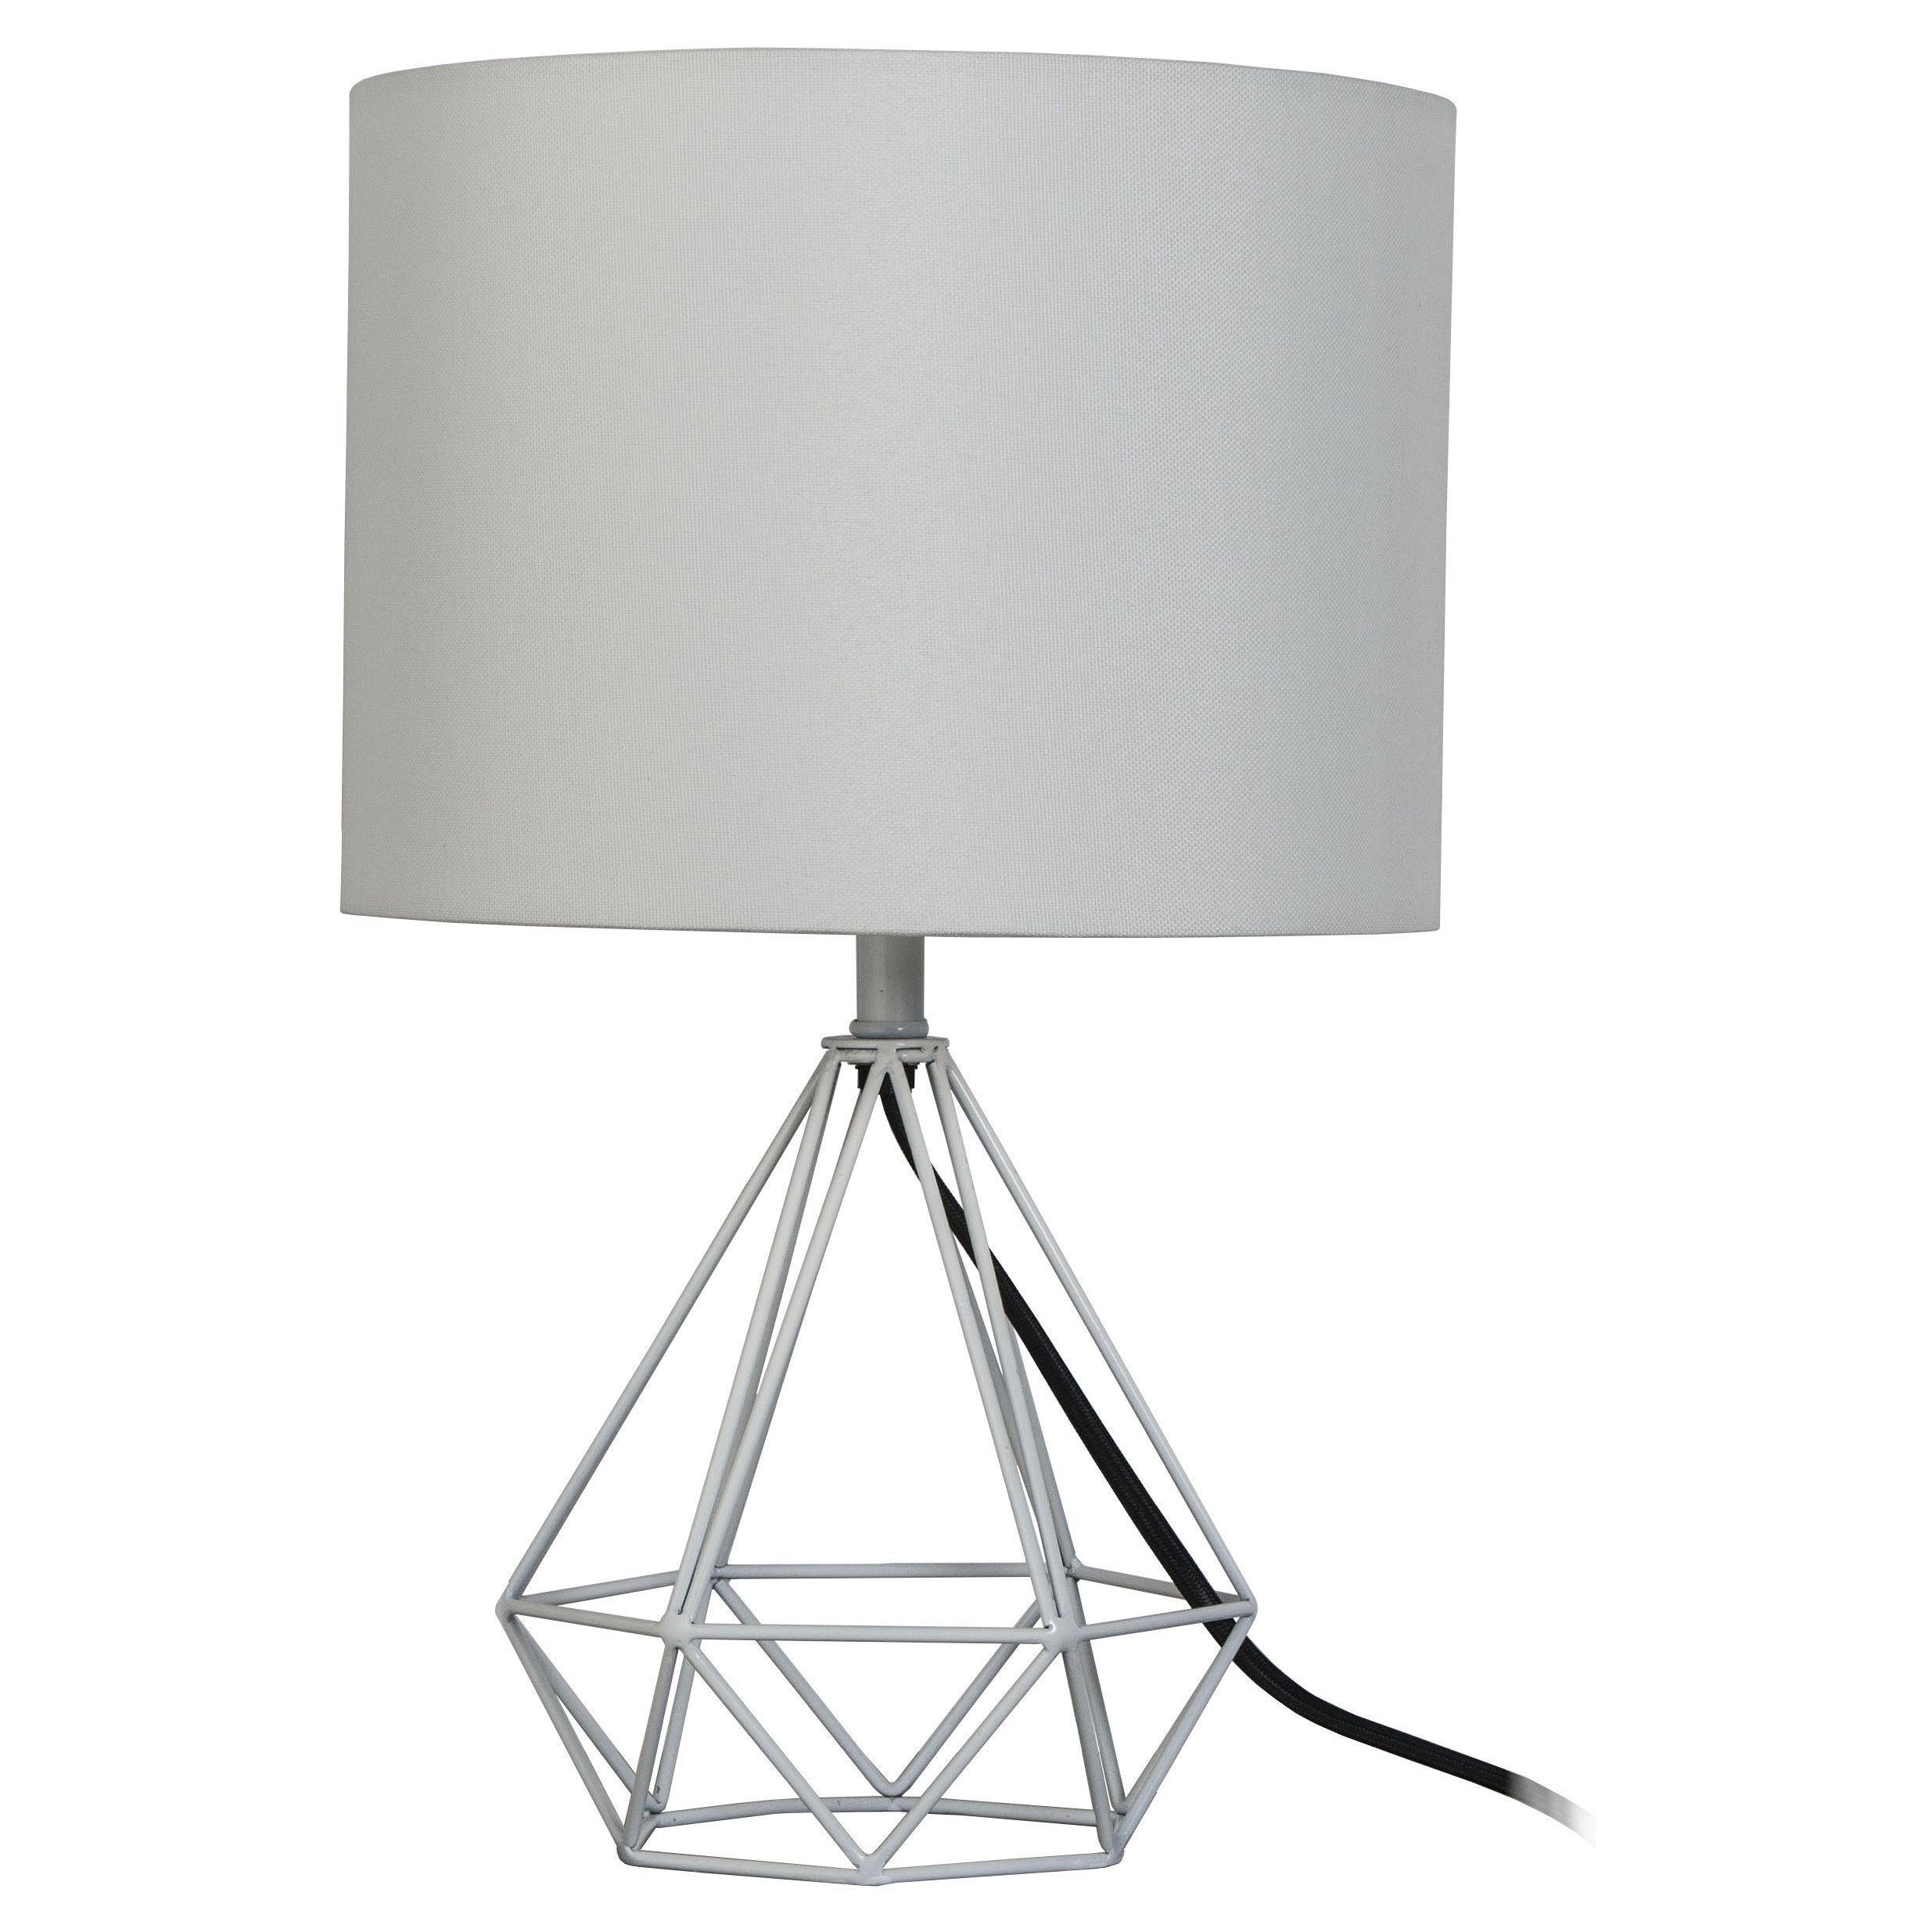 Table Lamps Target 24 99 At Target The Geometric Metal Small Table Lamp From